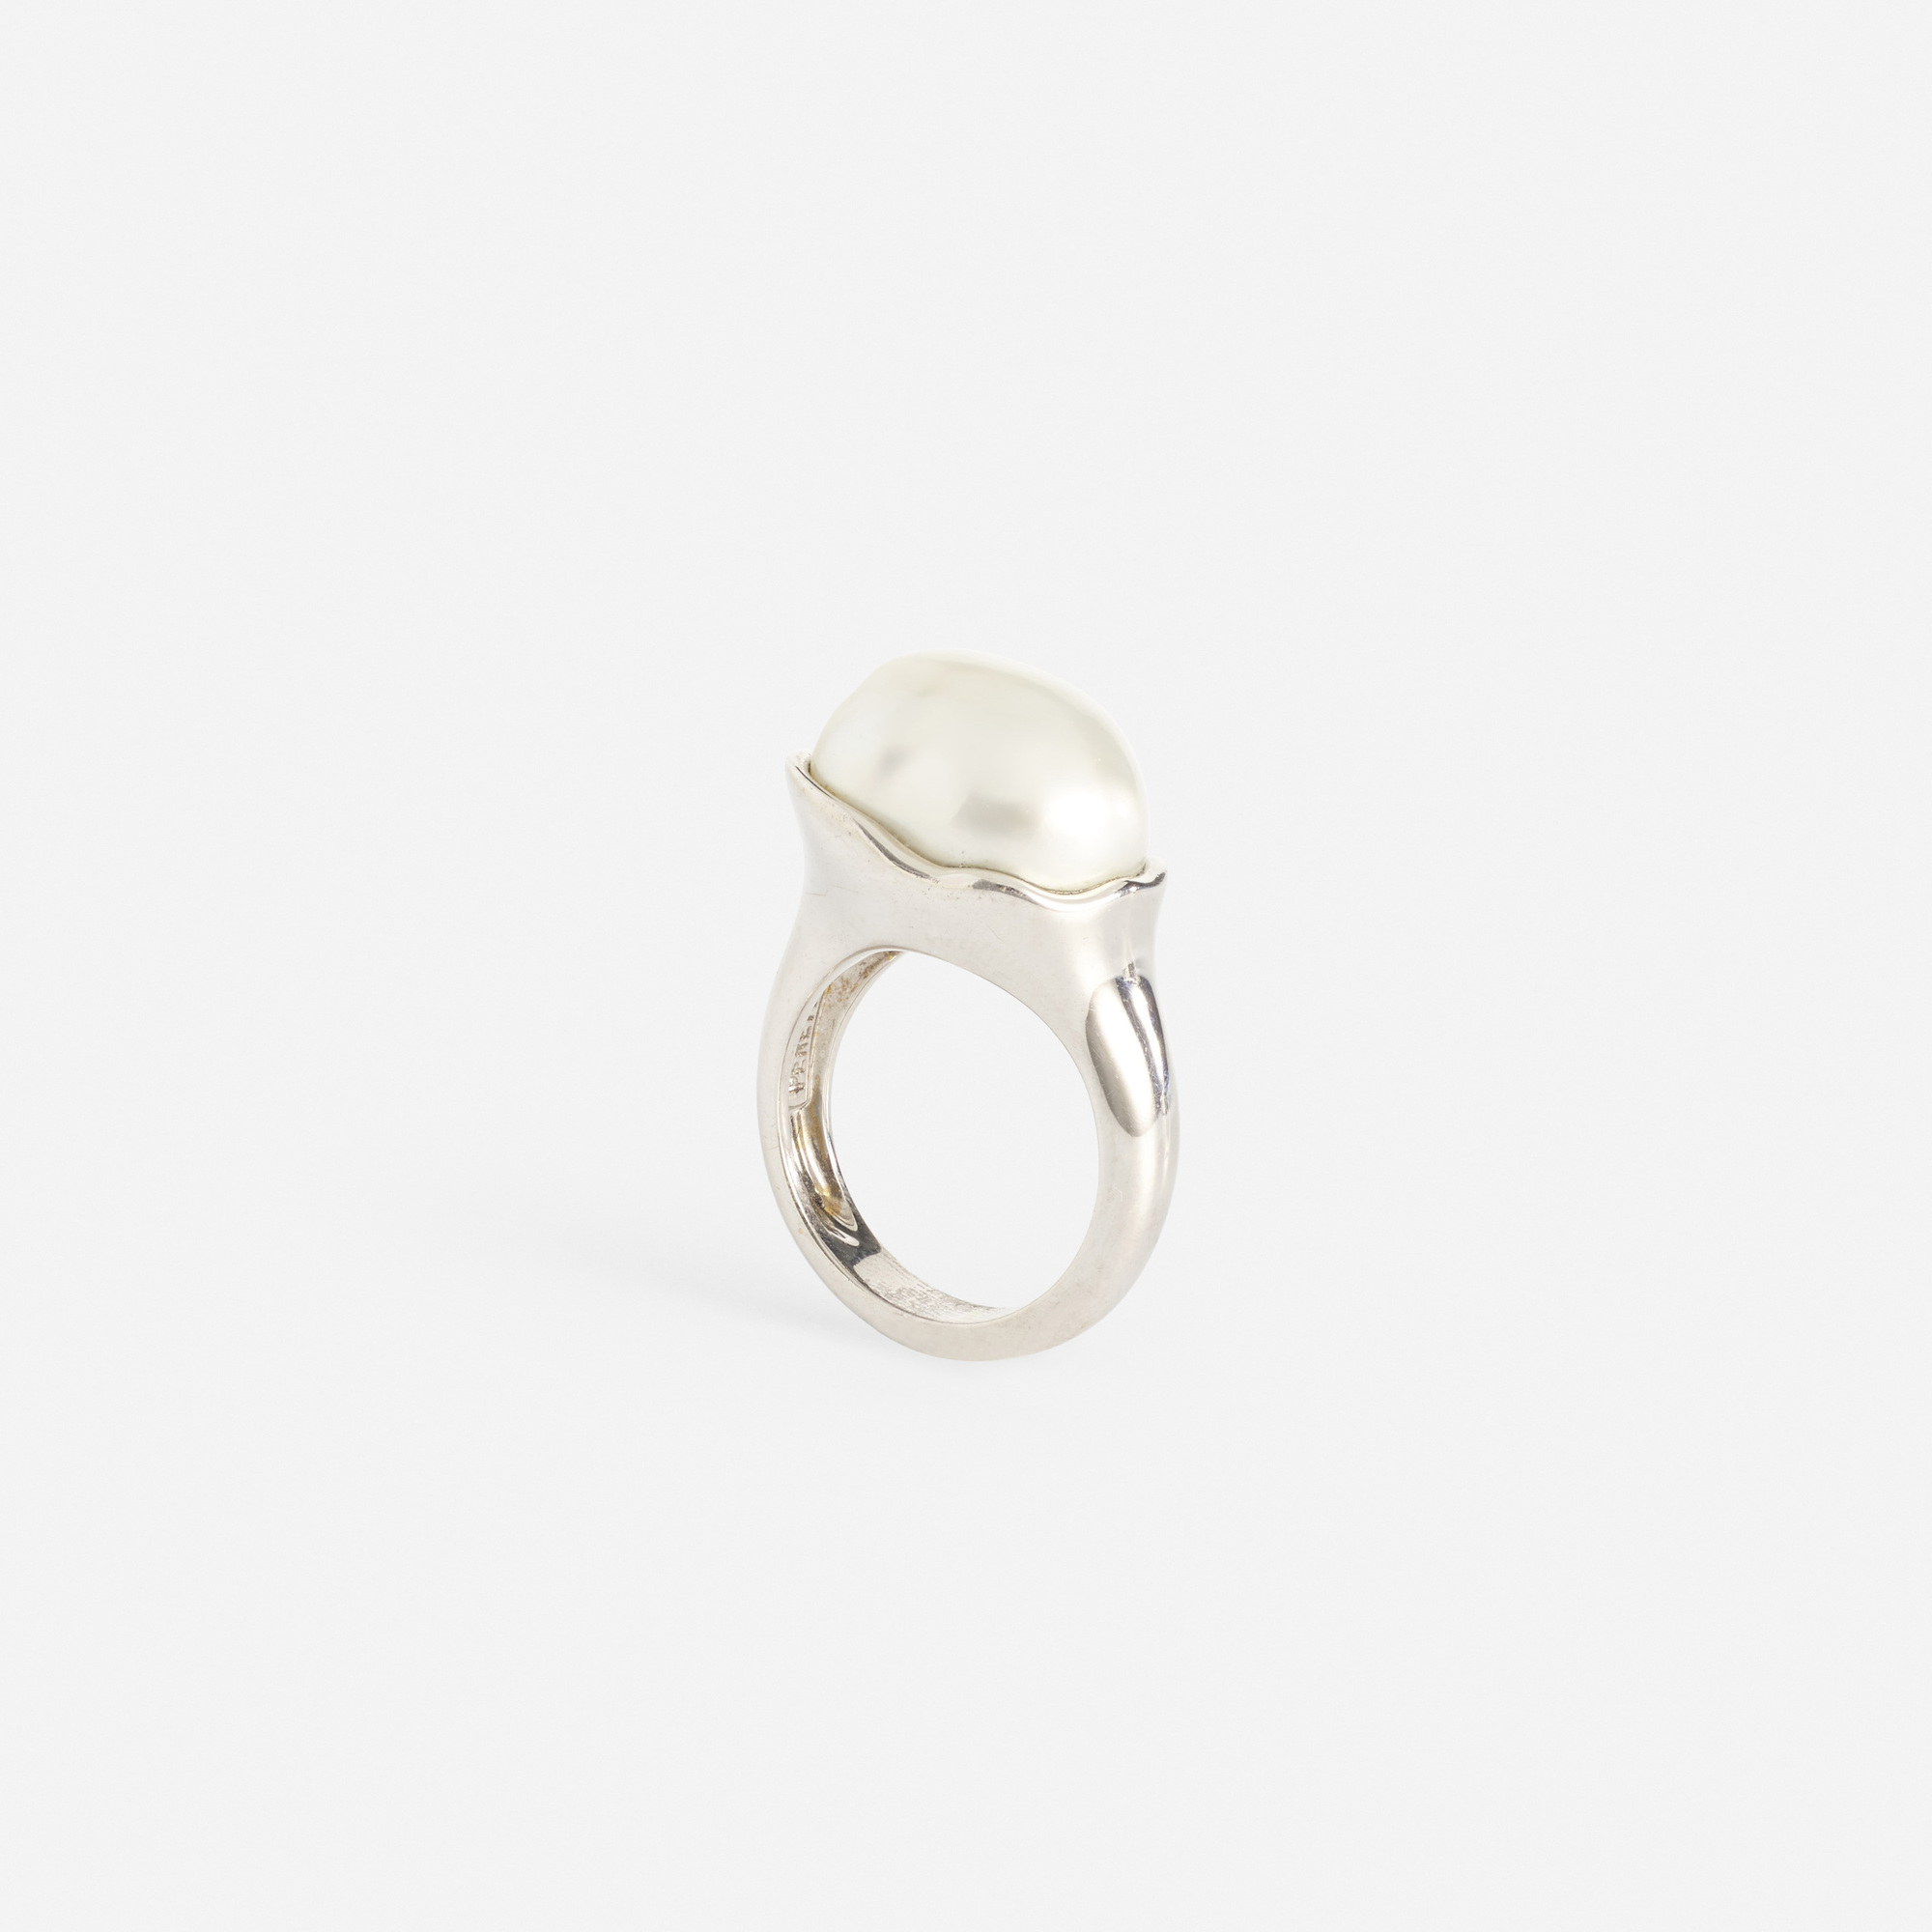 227: Elsa Peretti for Tiffany & Co. / A gold and Keshi pearl ring (2 of 2)